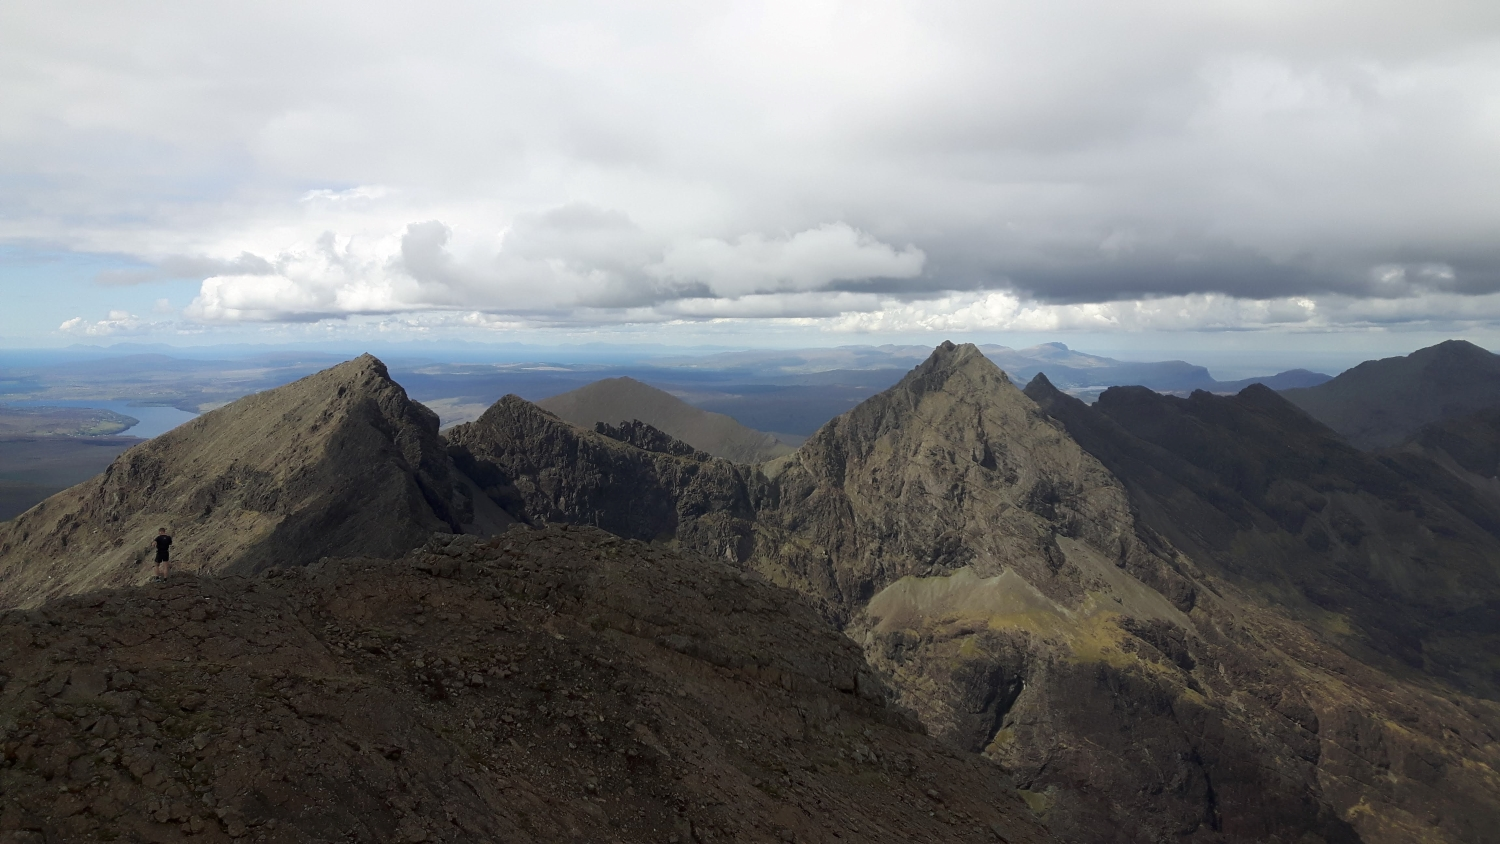 Looking north from the summit of the Inaccessible Pinnacle on day two - Sgurr nan Banachdich and Sgurr a'Ghreadaidh and on towards the north end of the ridge